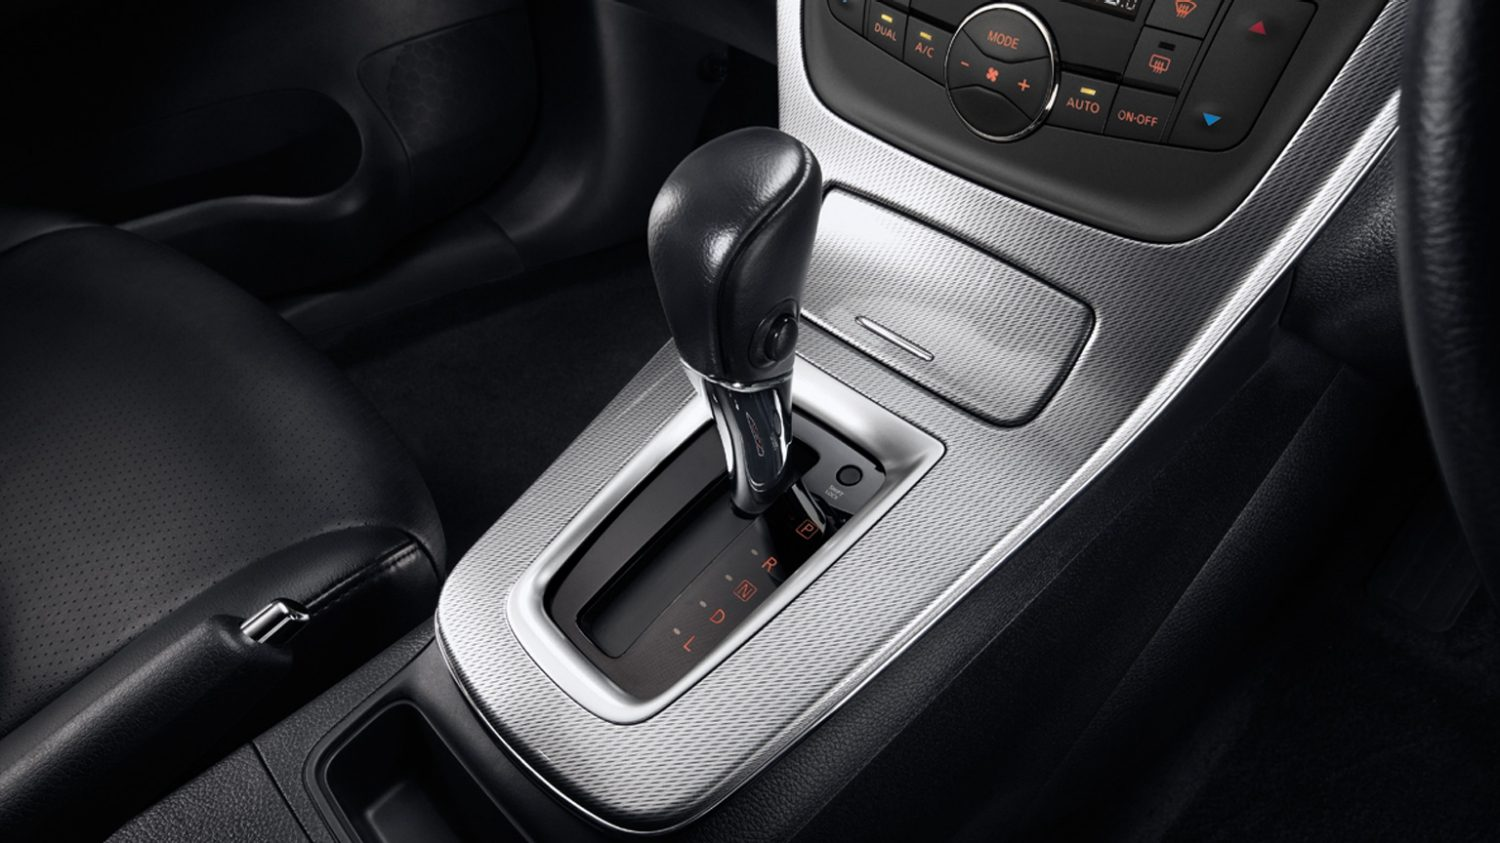 Sport style leather gear stick